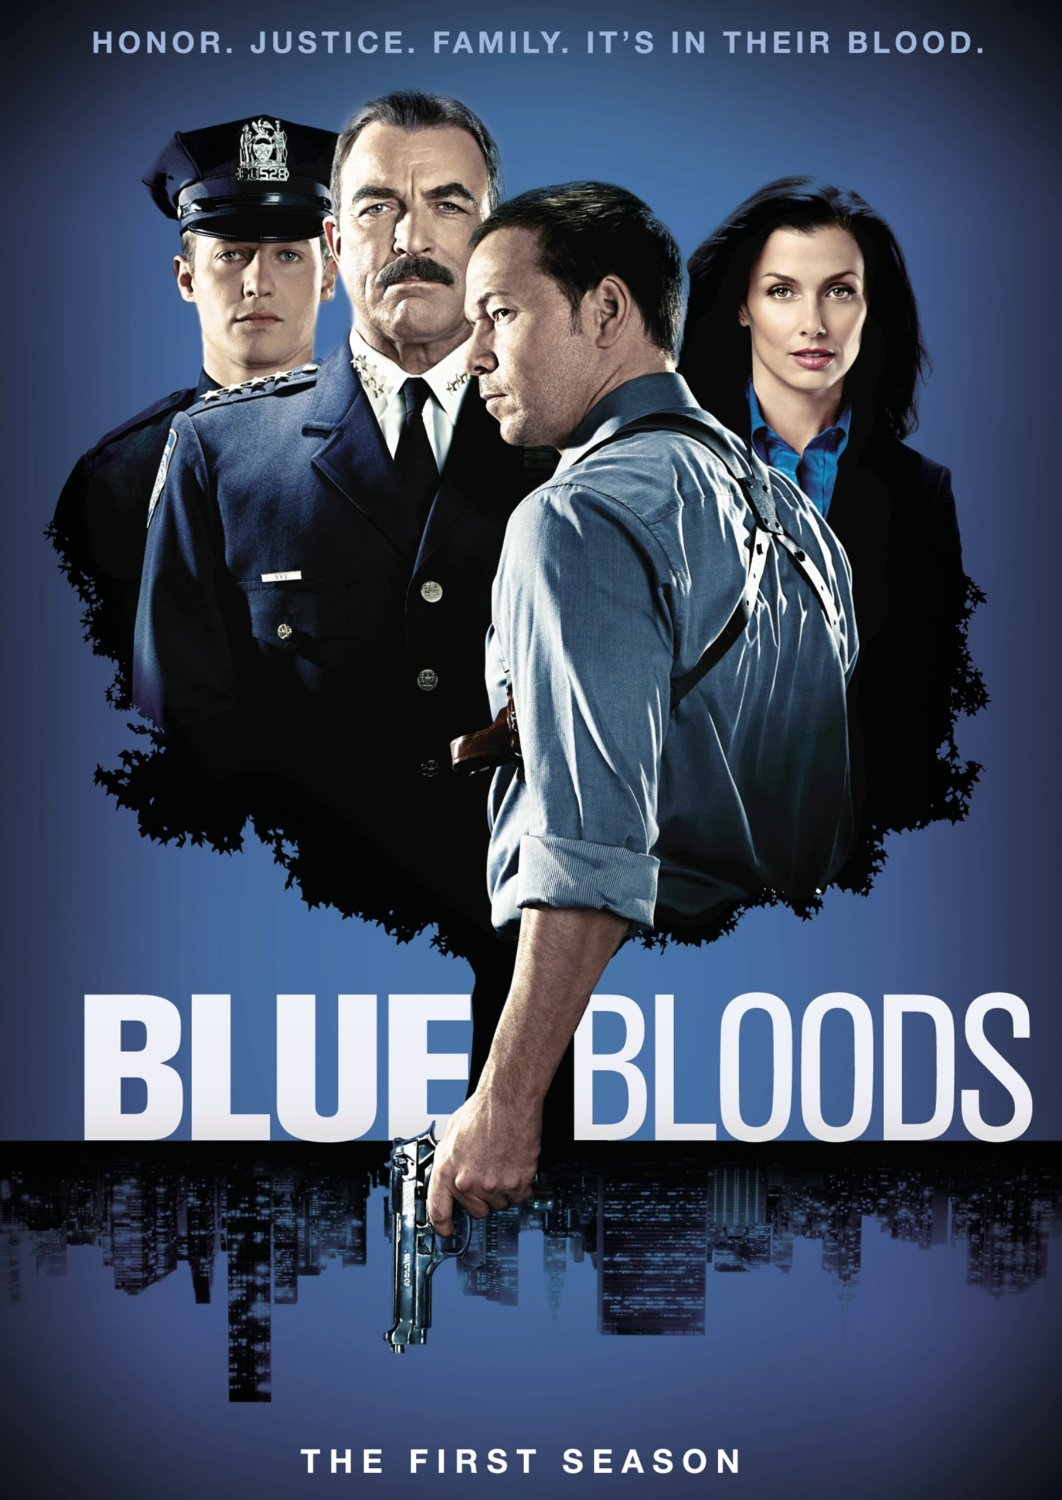 Blue Bloods (2010 series)